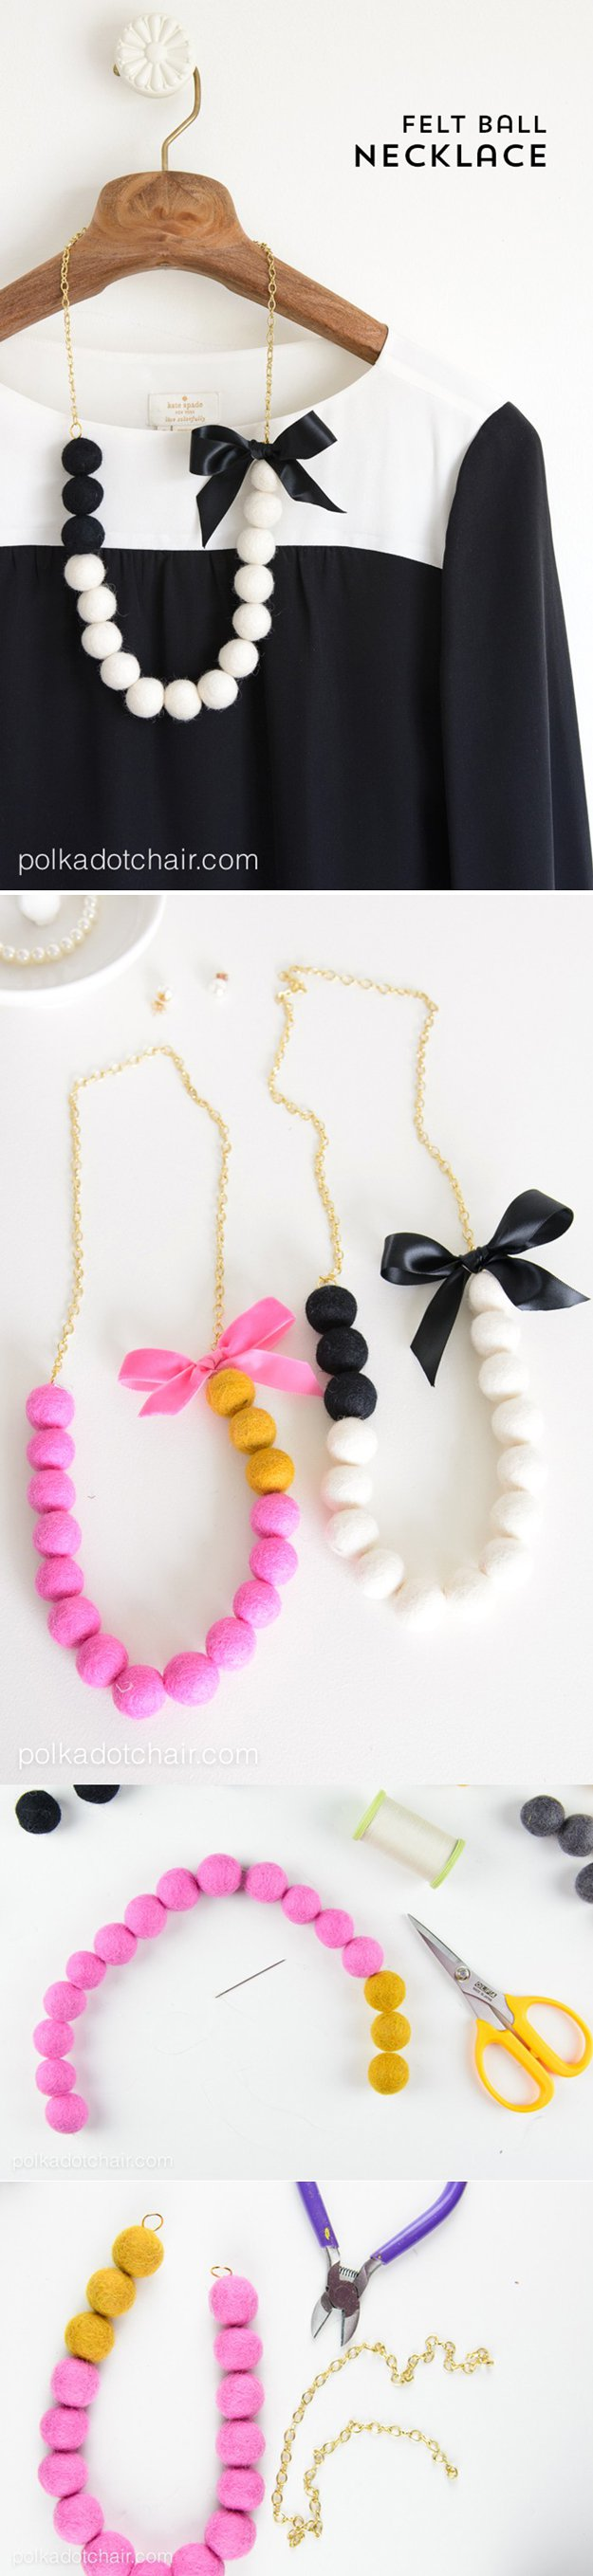 felt ball necklace diy